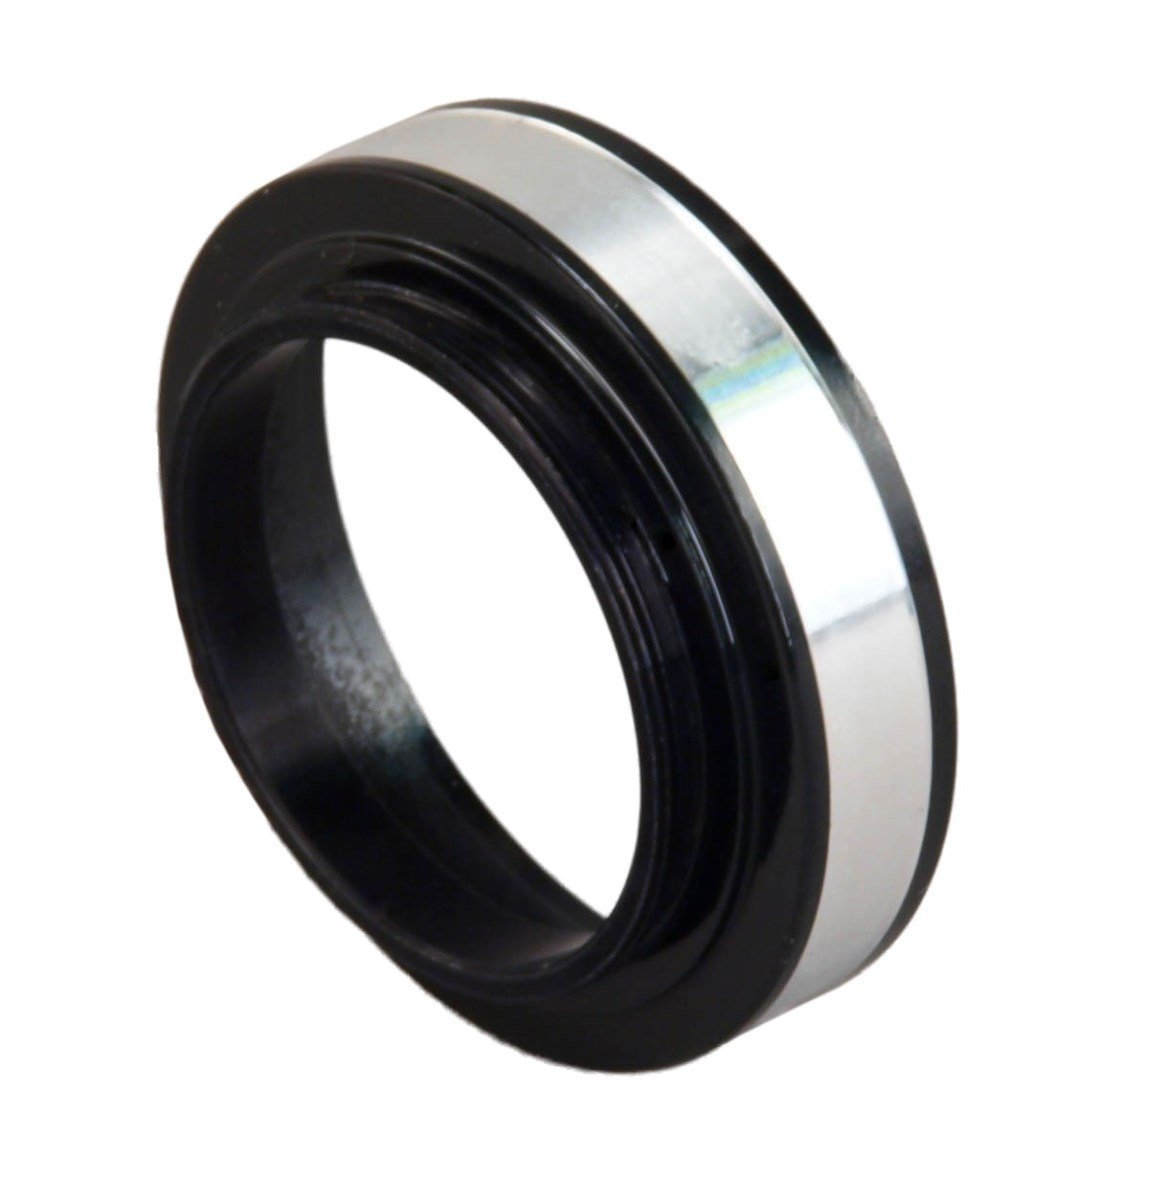 AmScope 38mm Ring Adapter For Bausch & Lomb Stereo Microscopes by AmScope